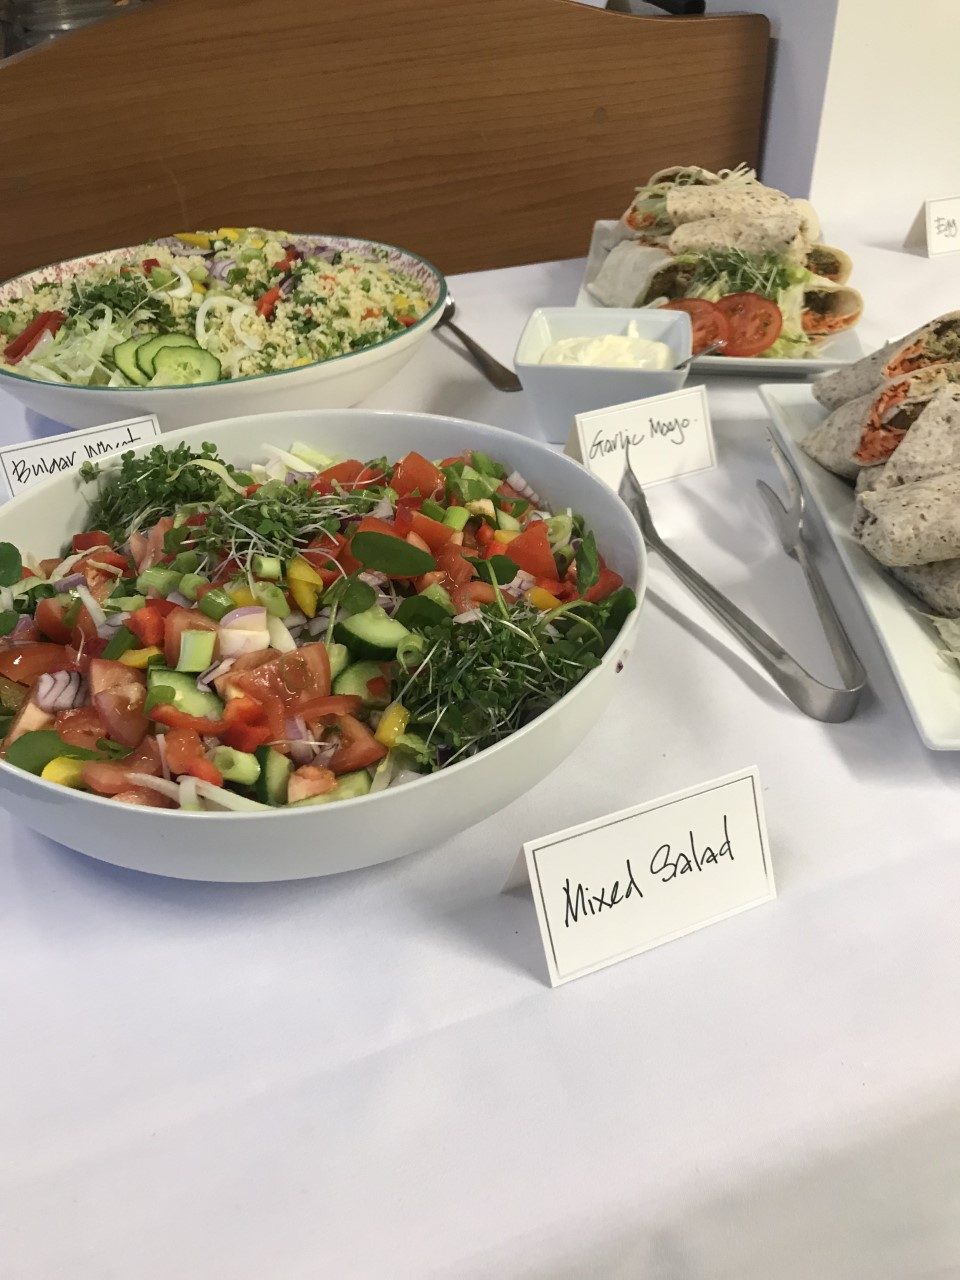 http://Two%20delicious%20looking%20and%20colourful%20salads%20in%20bowls%20next%20to%20two%20plates%20of%20wraps,%20they%20all%20have%20neatly%20written%20labels.